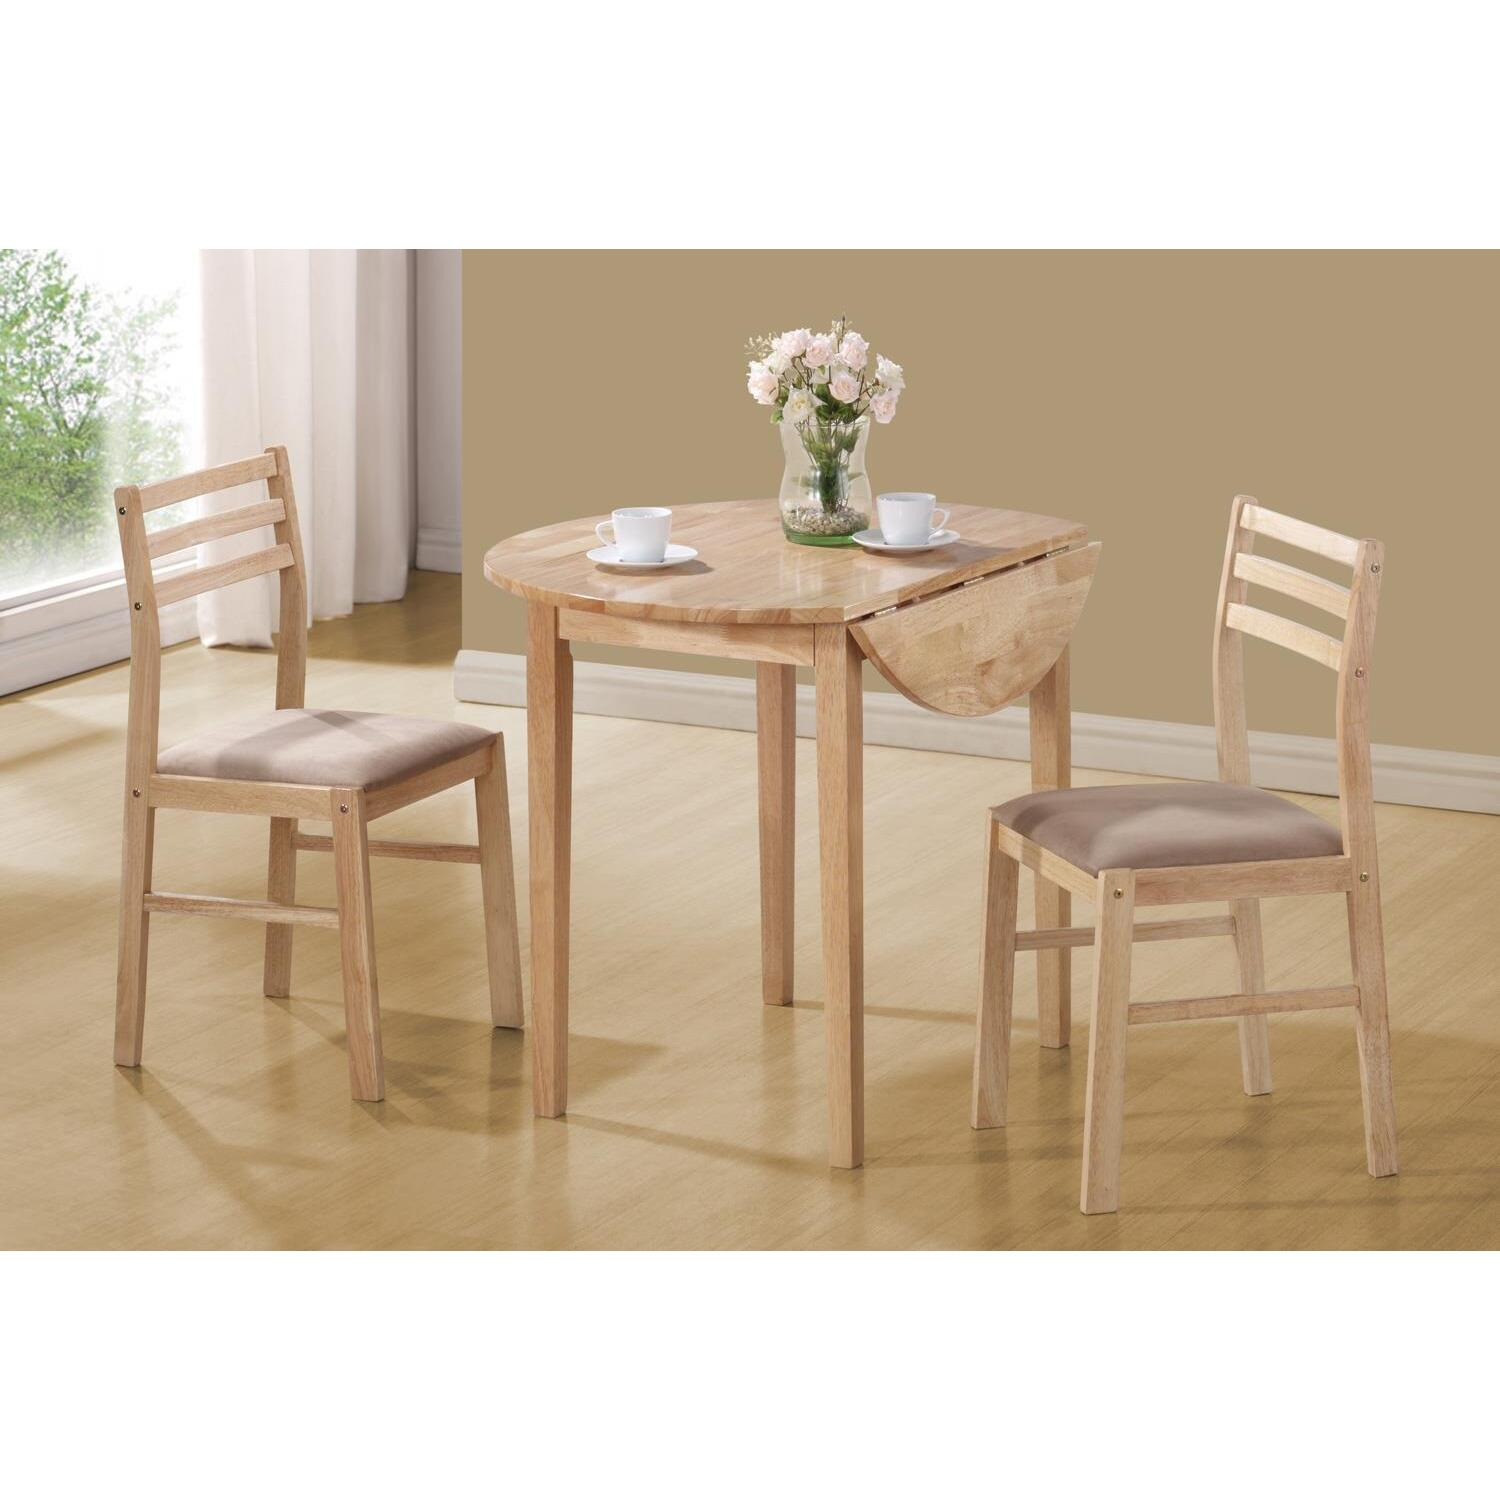 3 piece dining set ojcommerce for Breakfast table